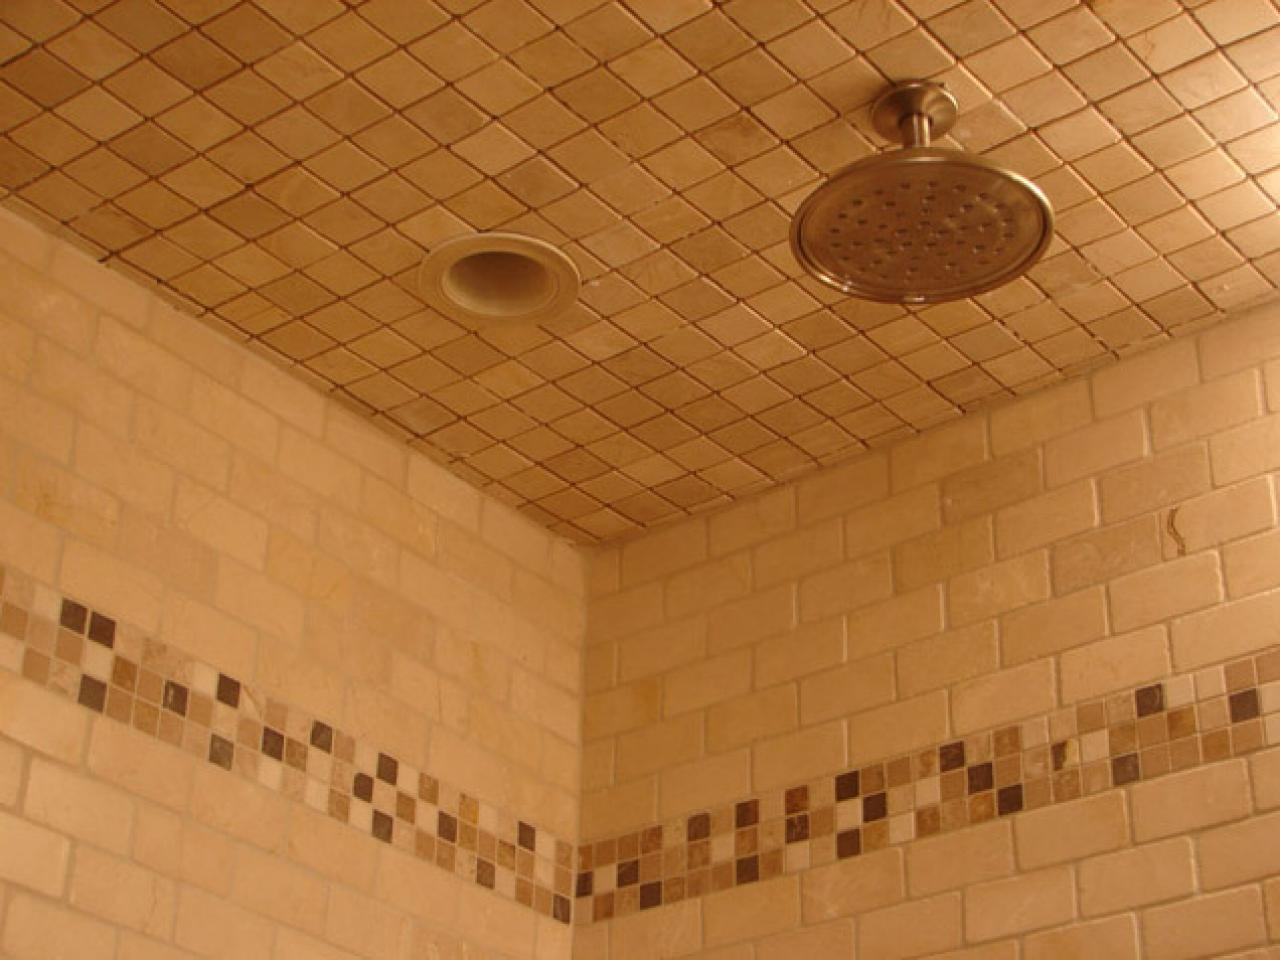 How to install tile in a bathroom shower how tos diy droc3134fyshowerhead04 dailygadgetfo Choice Image